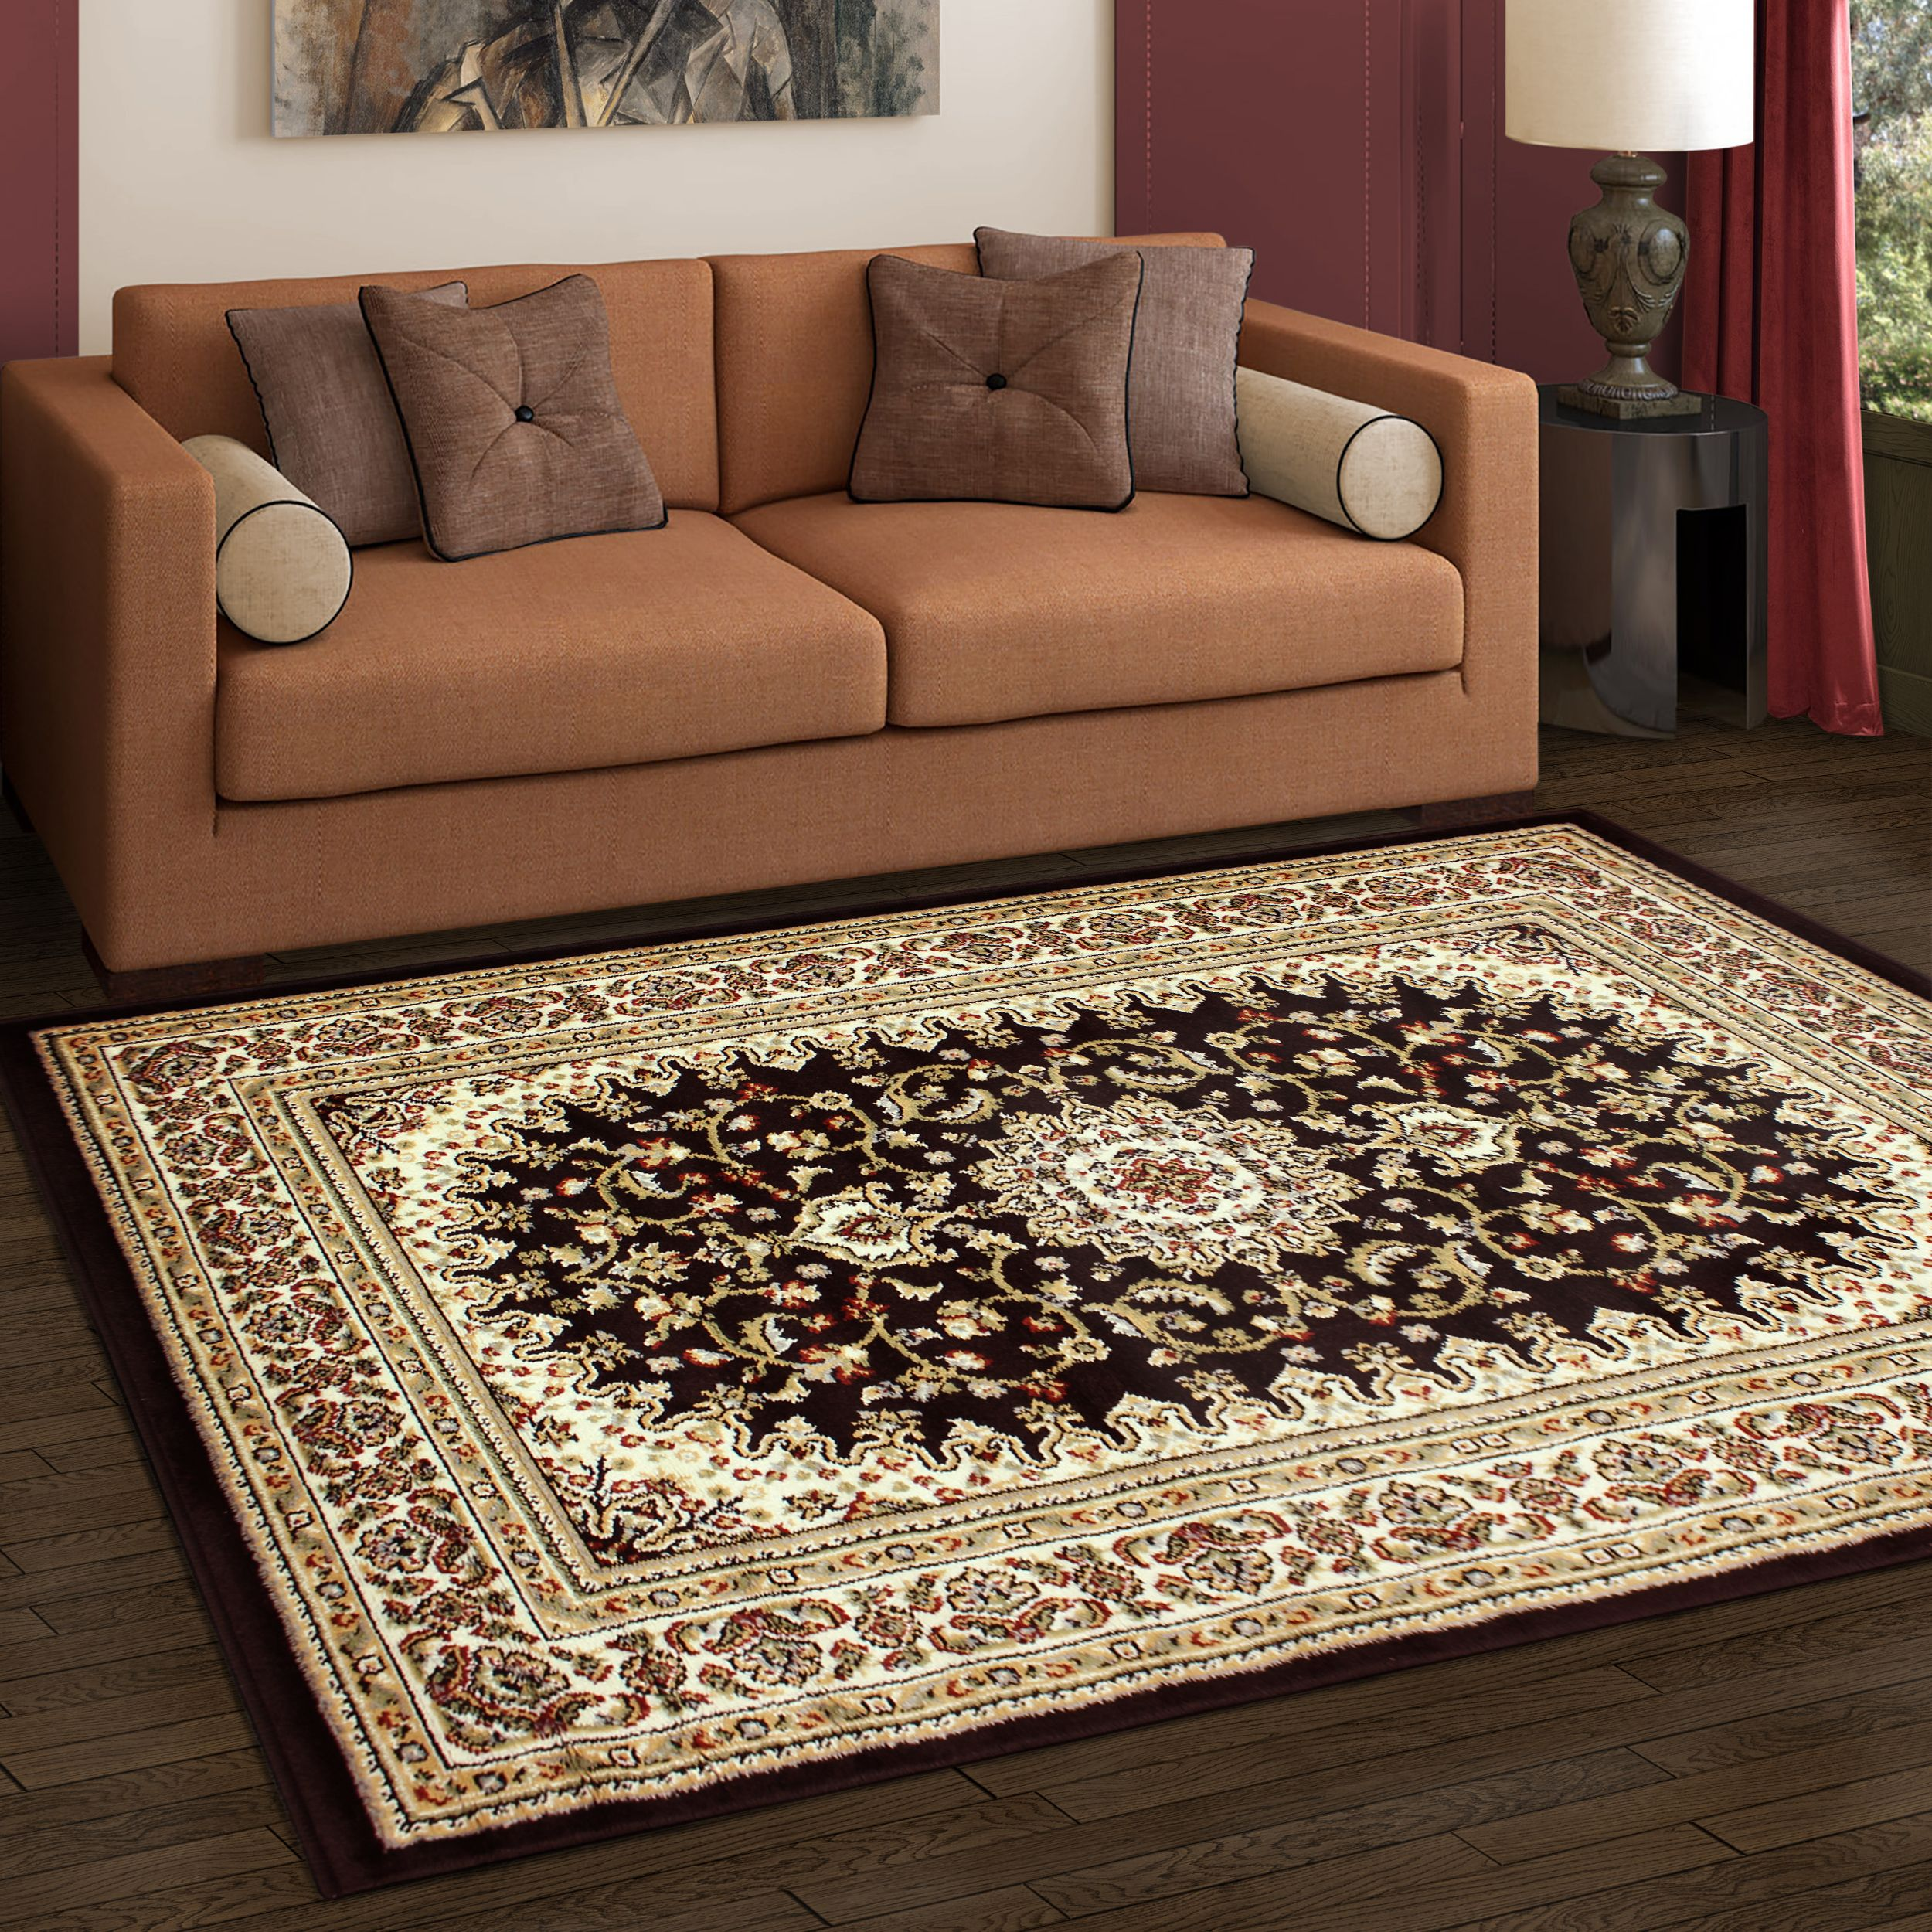 Superior Elegant Edinberg Collection with 8mm Pile and Jute Backing, Moisture Resistant and Anti-Static Indoor Area Rug